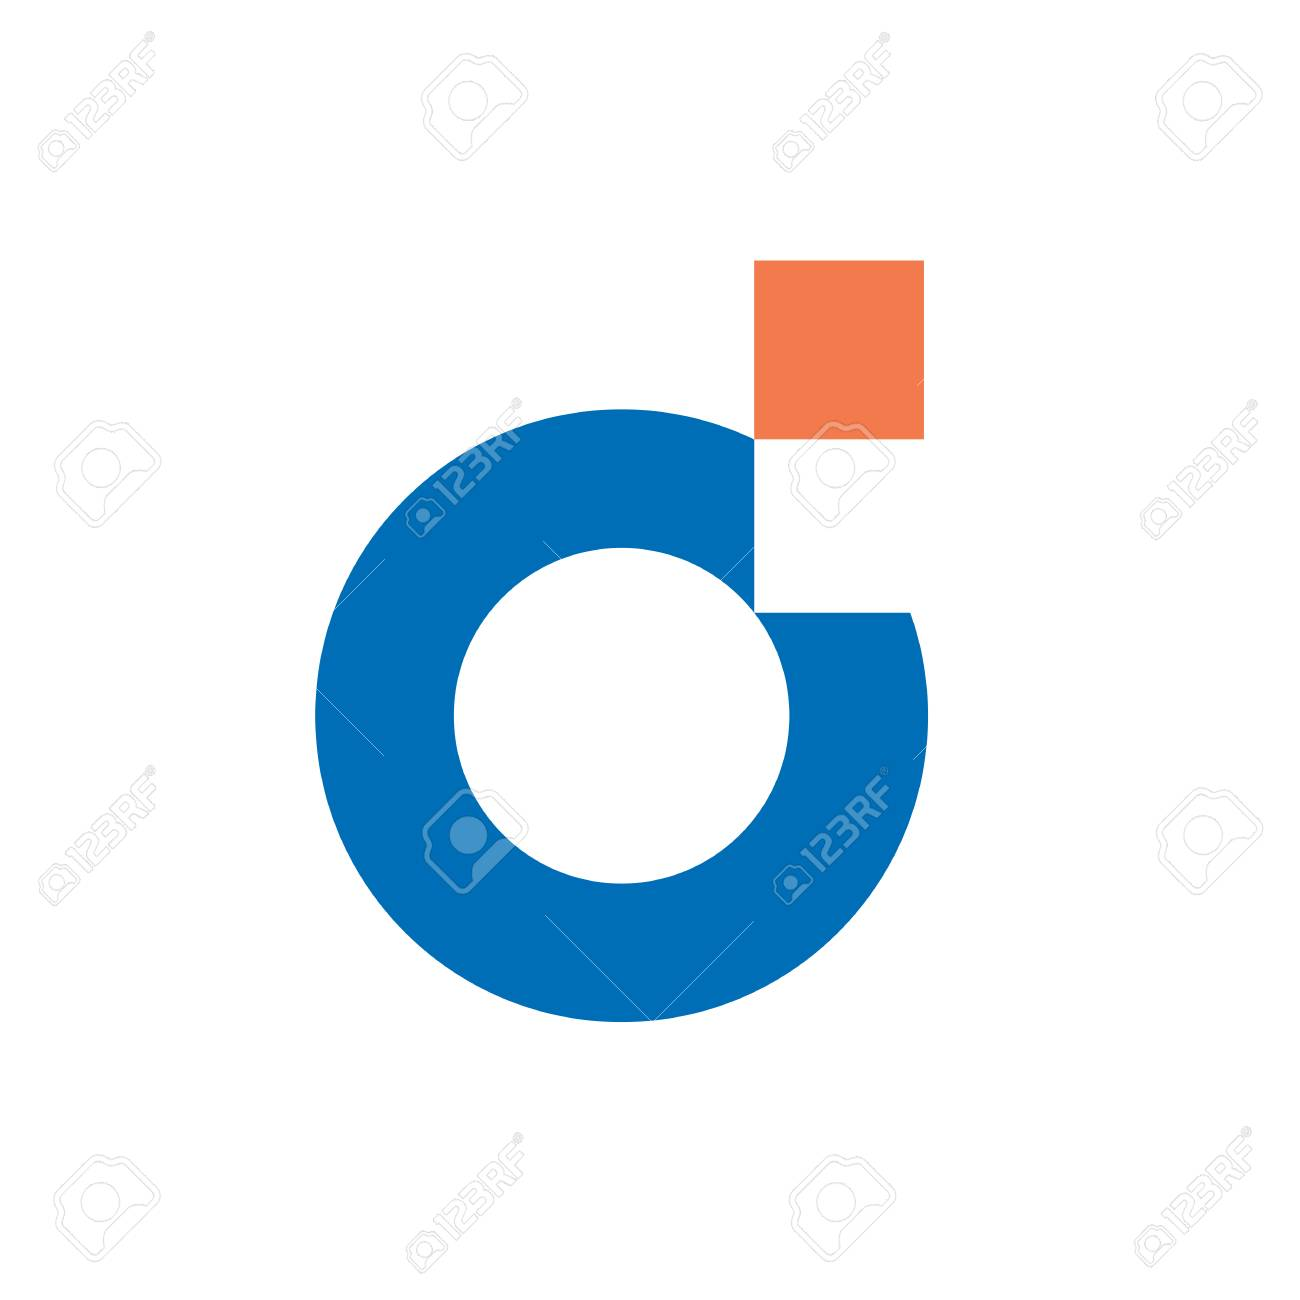 Digital Letter D Logo  Clean and simple logo template, made from